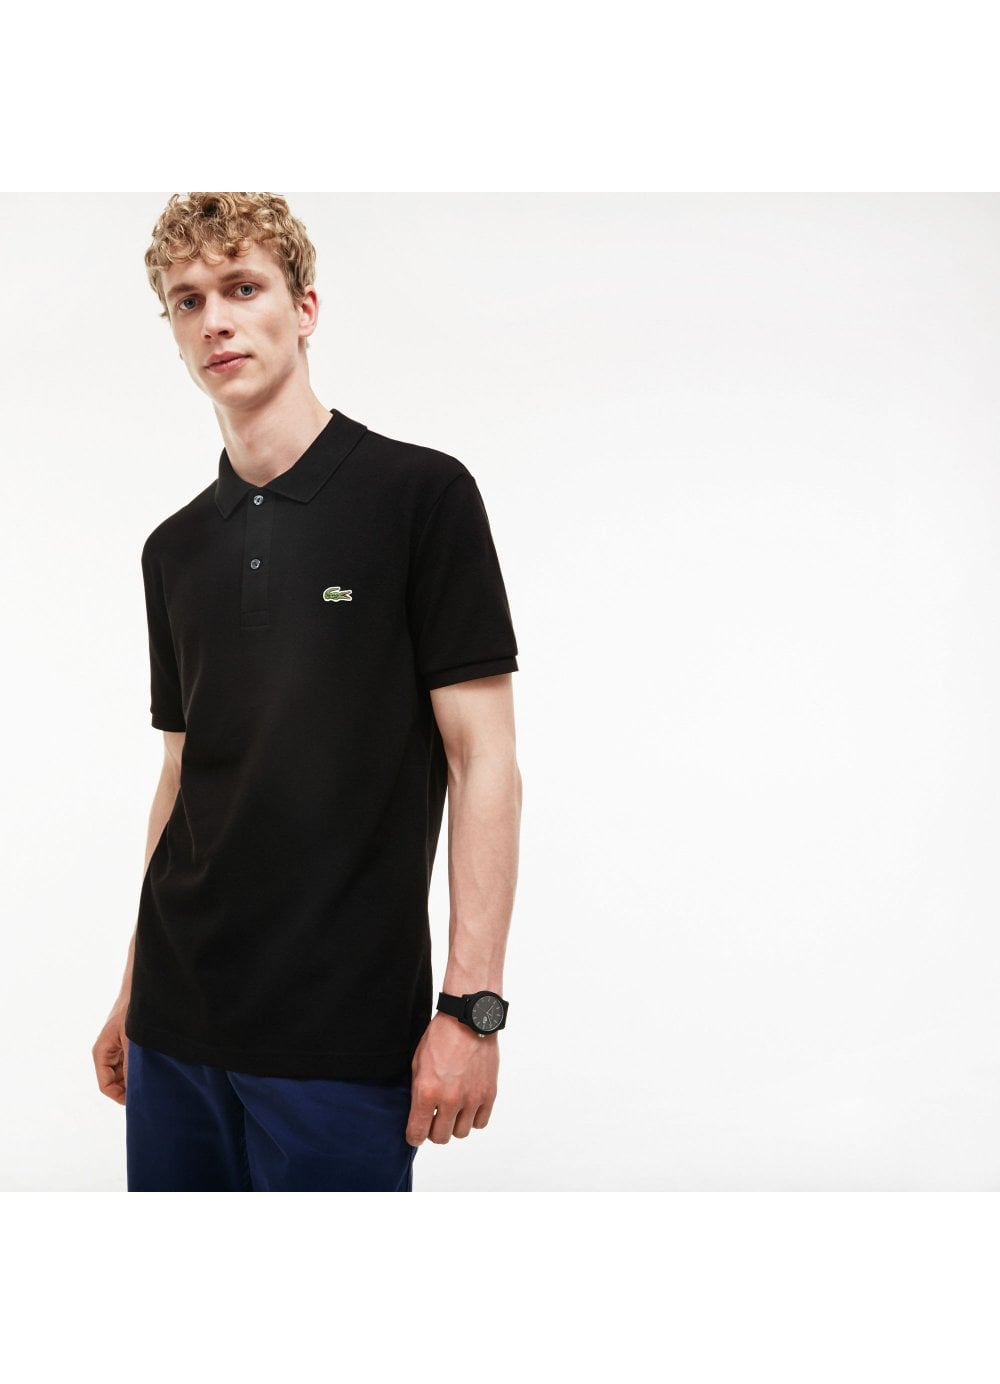 d1564286 Mens Short Sleeved Slim Fit Lacoste Polo Shirt Black - Time Clothing